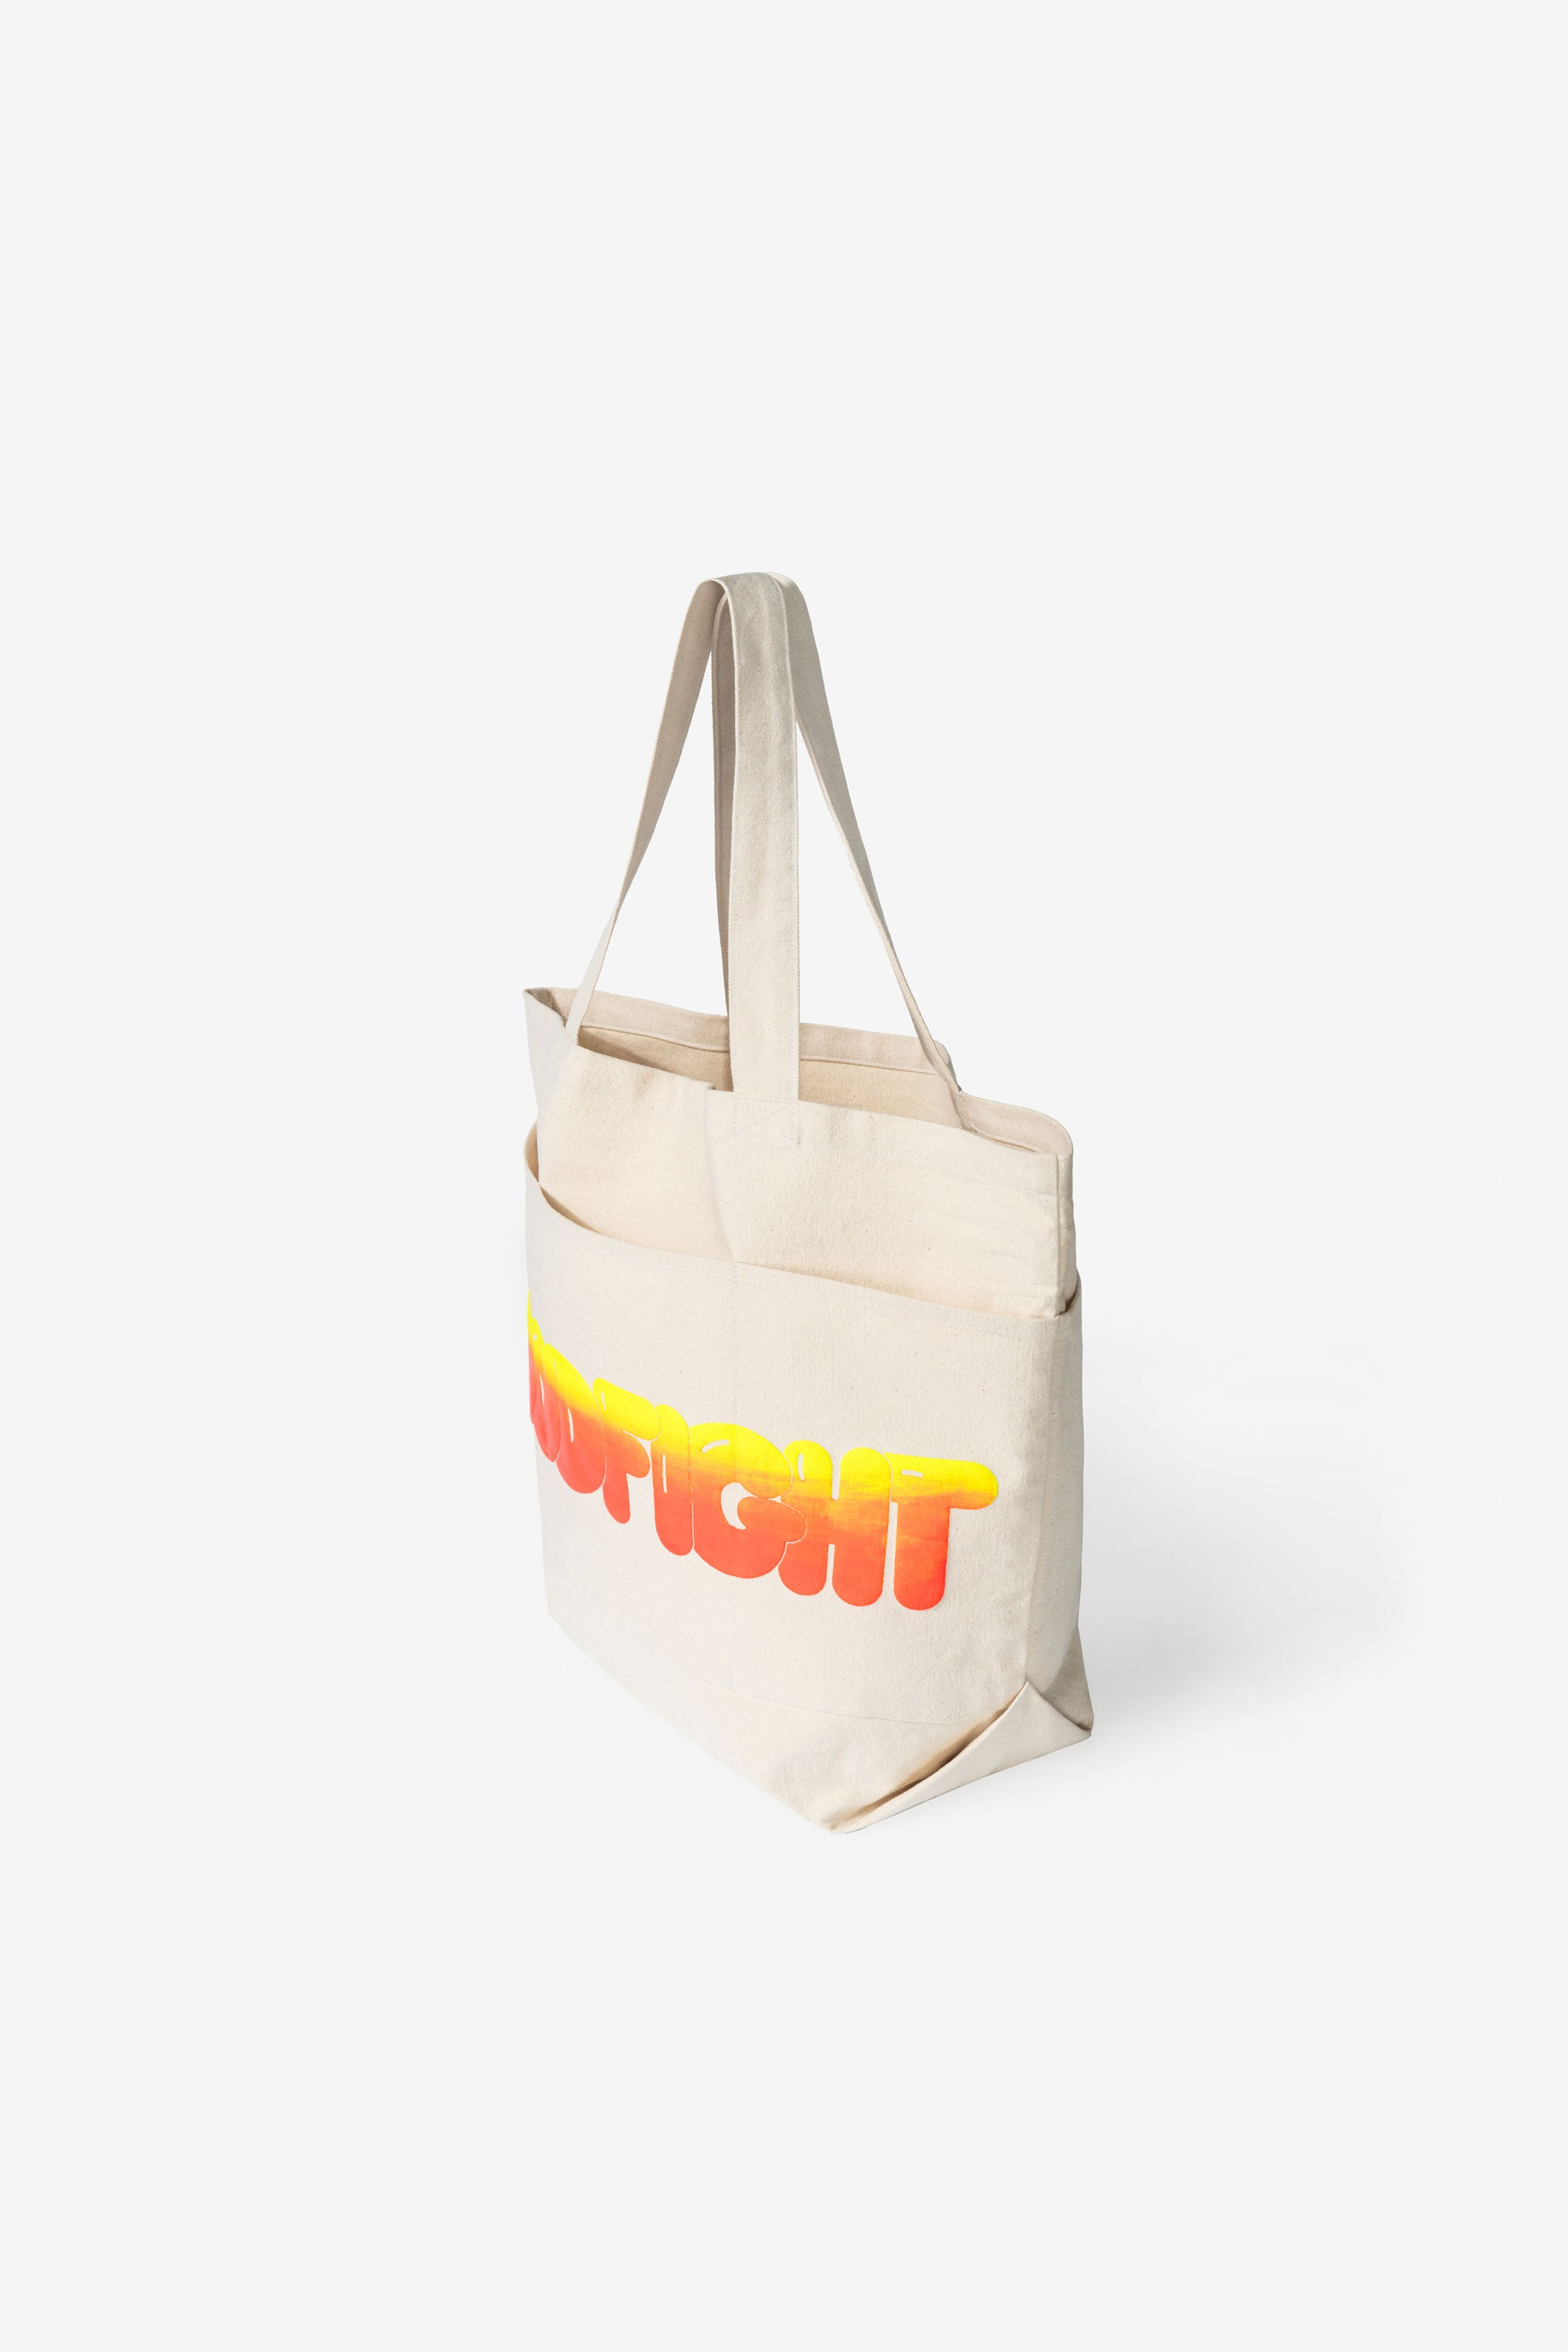 Goodfight Good Tote - Neon Sunrise Puff